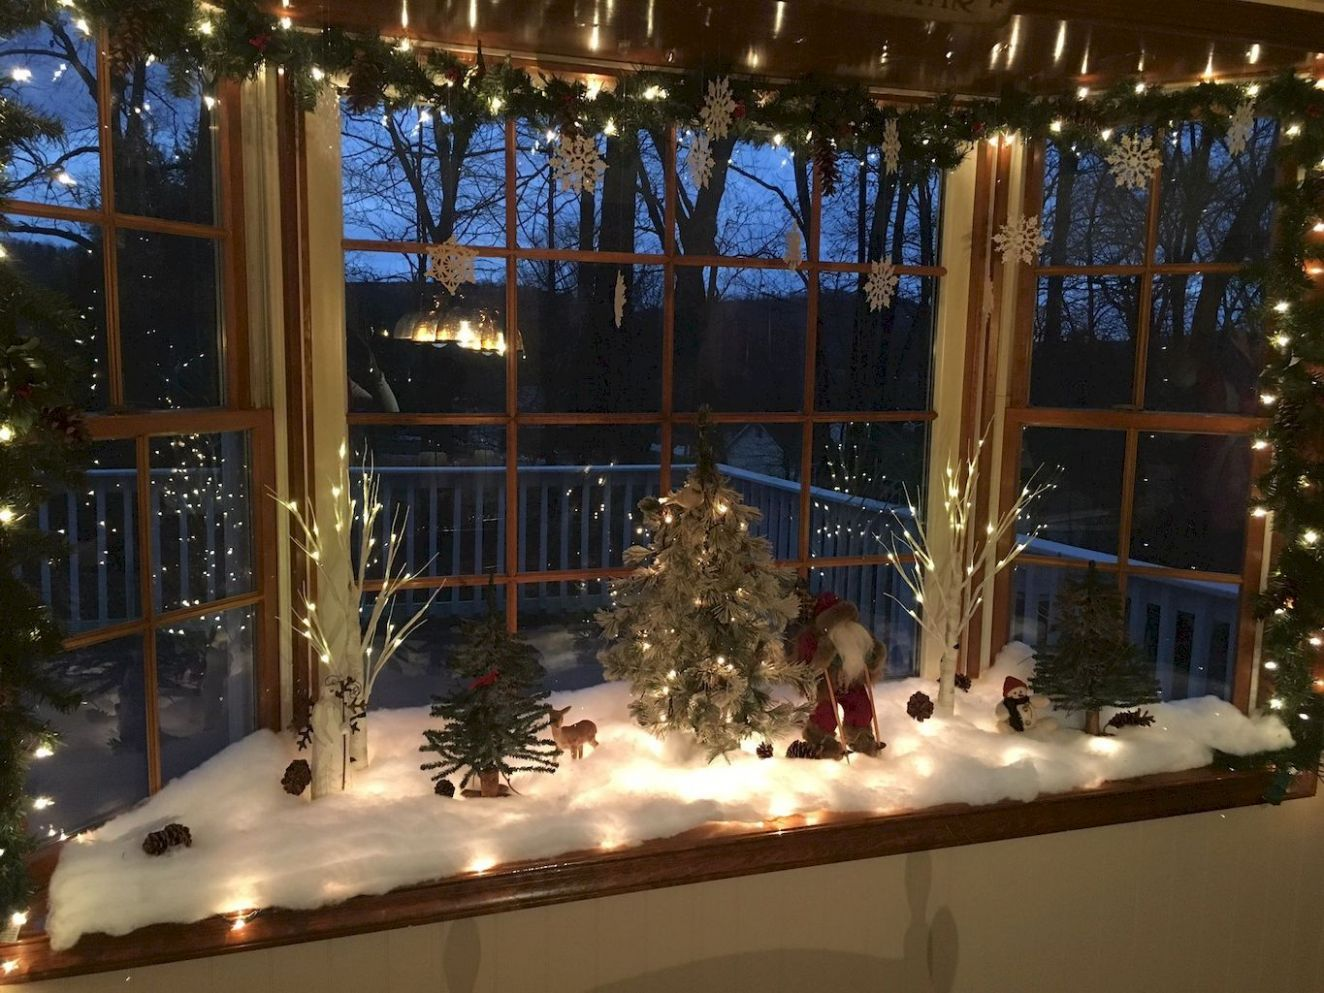 11 Christmas Village Window Display Ideas – Home to Z | Christmas ..